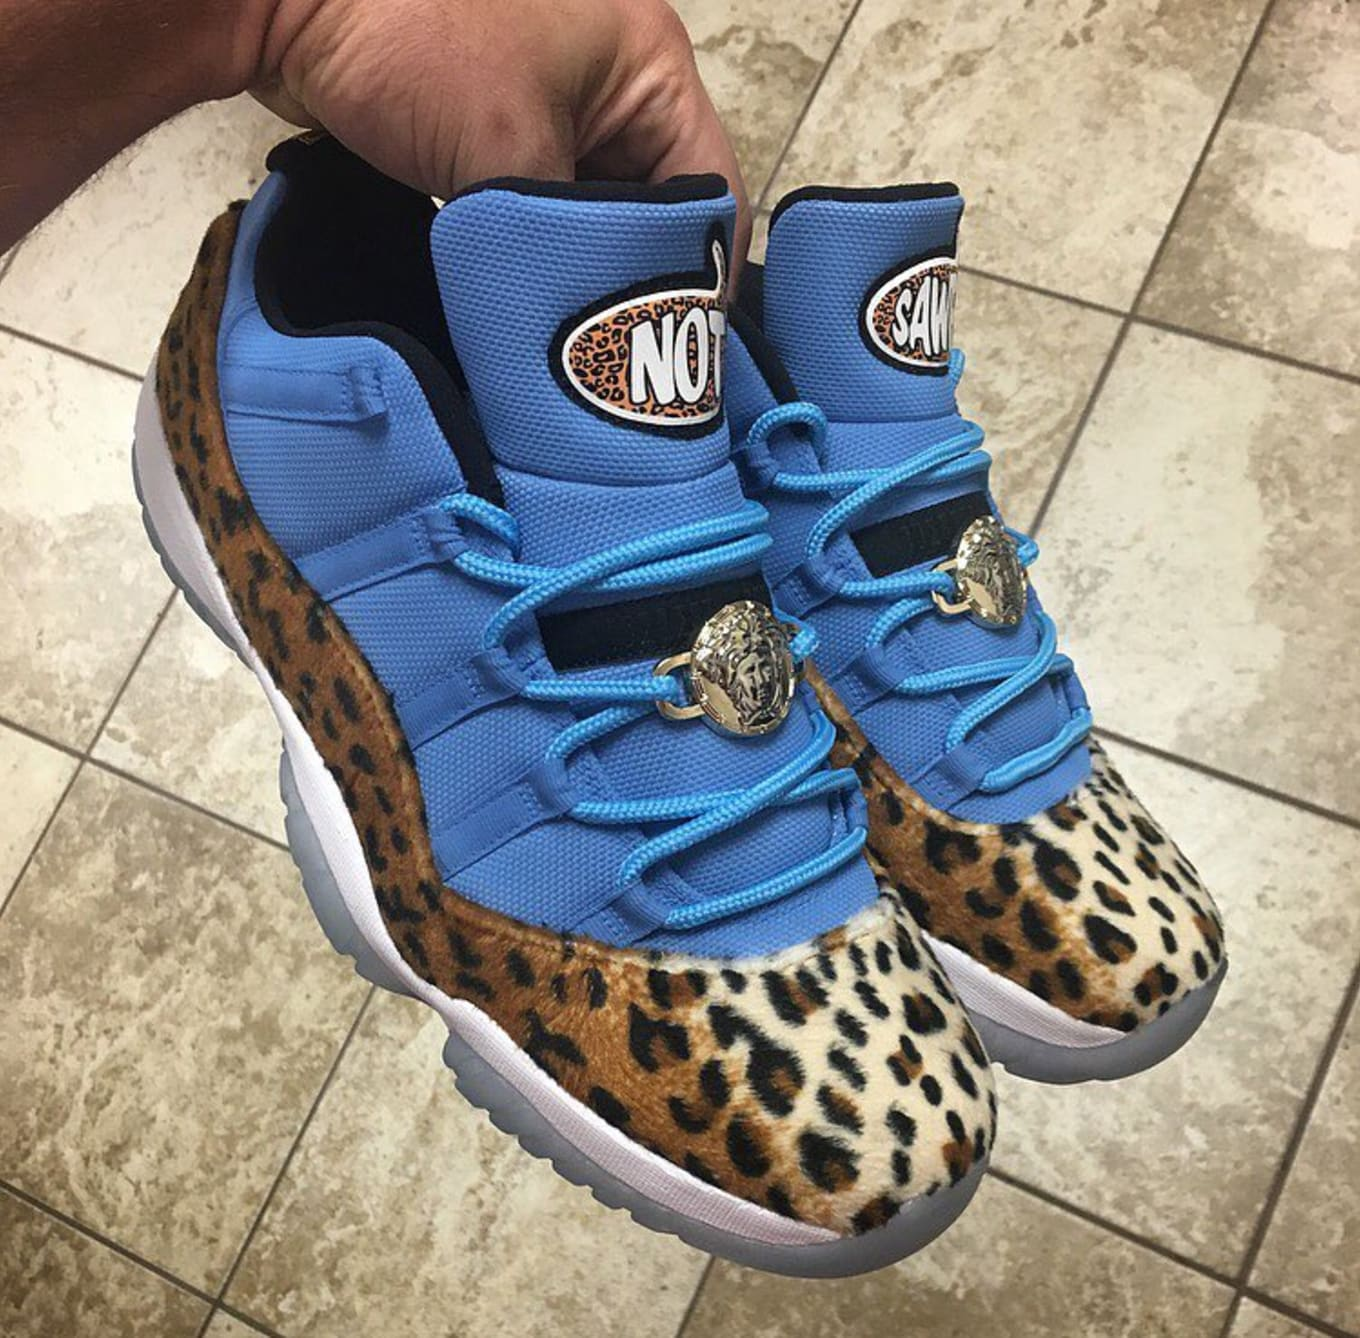 Enzo Amore Air Jordan 11 Low Sole Collector